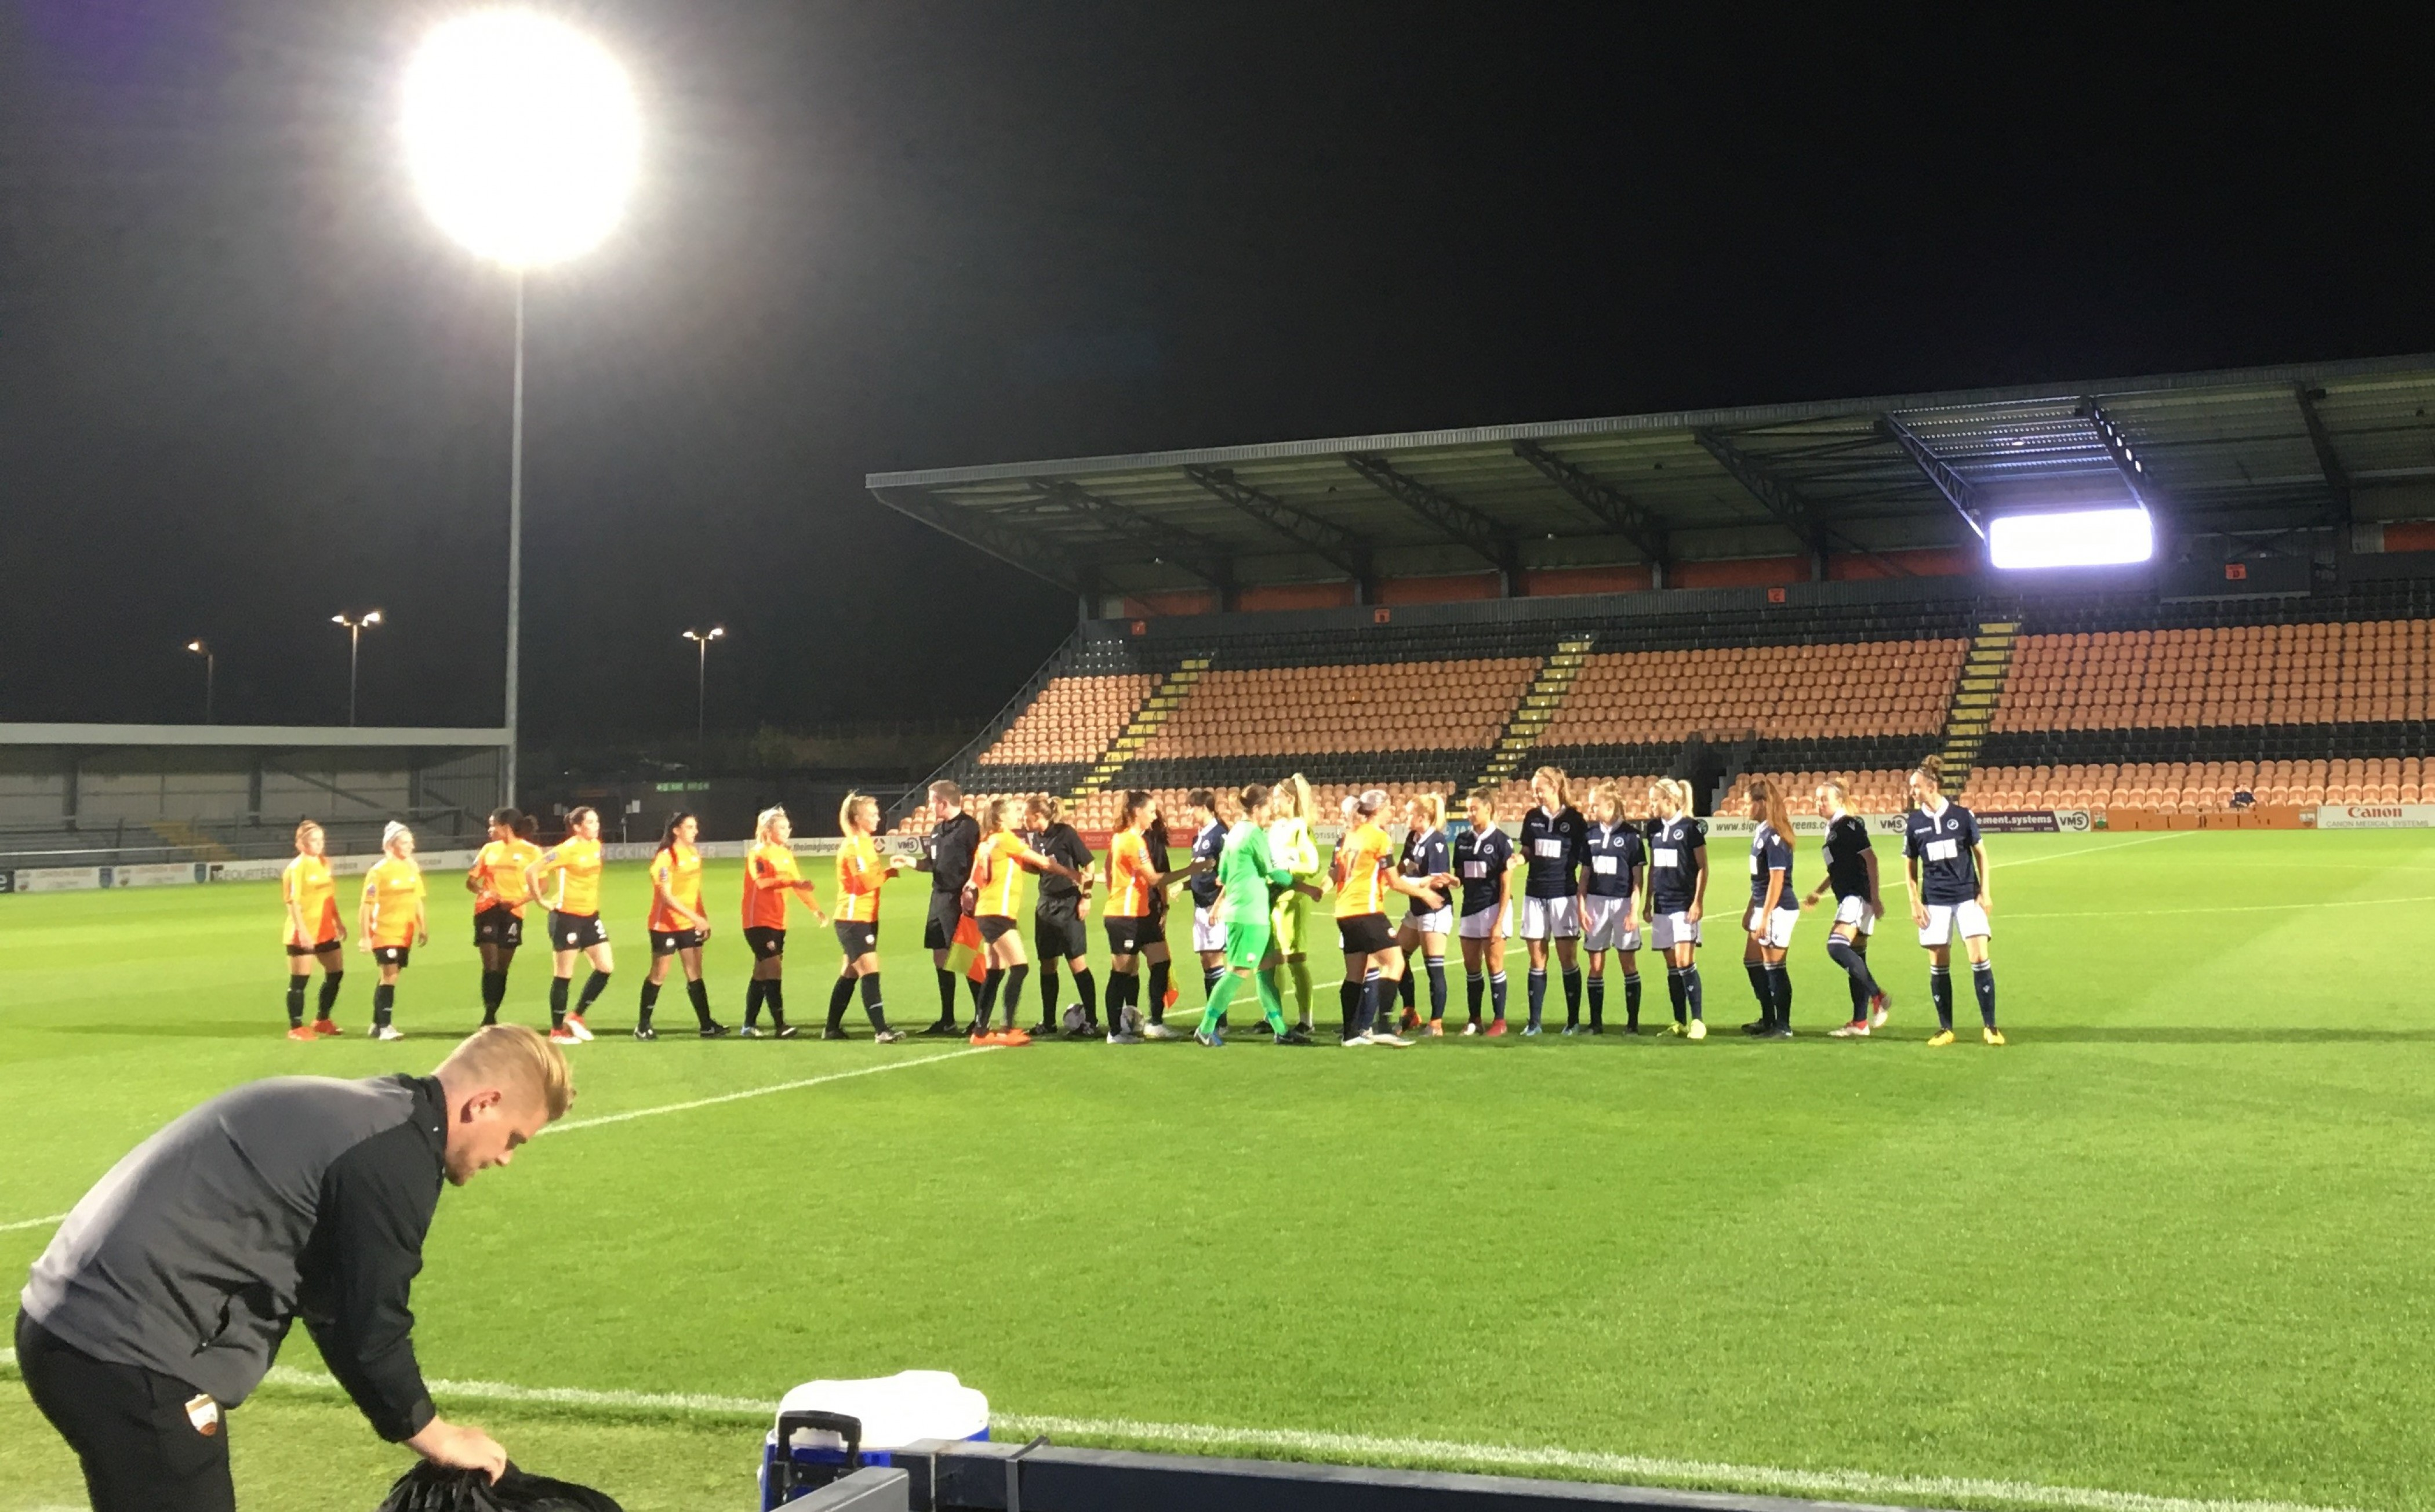 London Bees 2-1 Millwall Lionesses: Hosts snatch last minute win